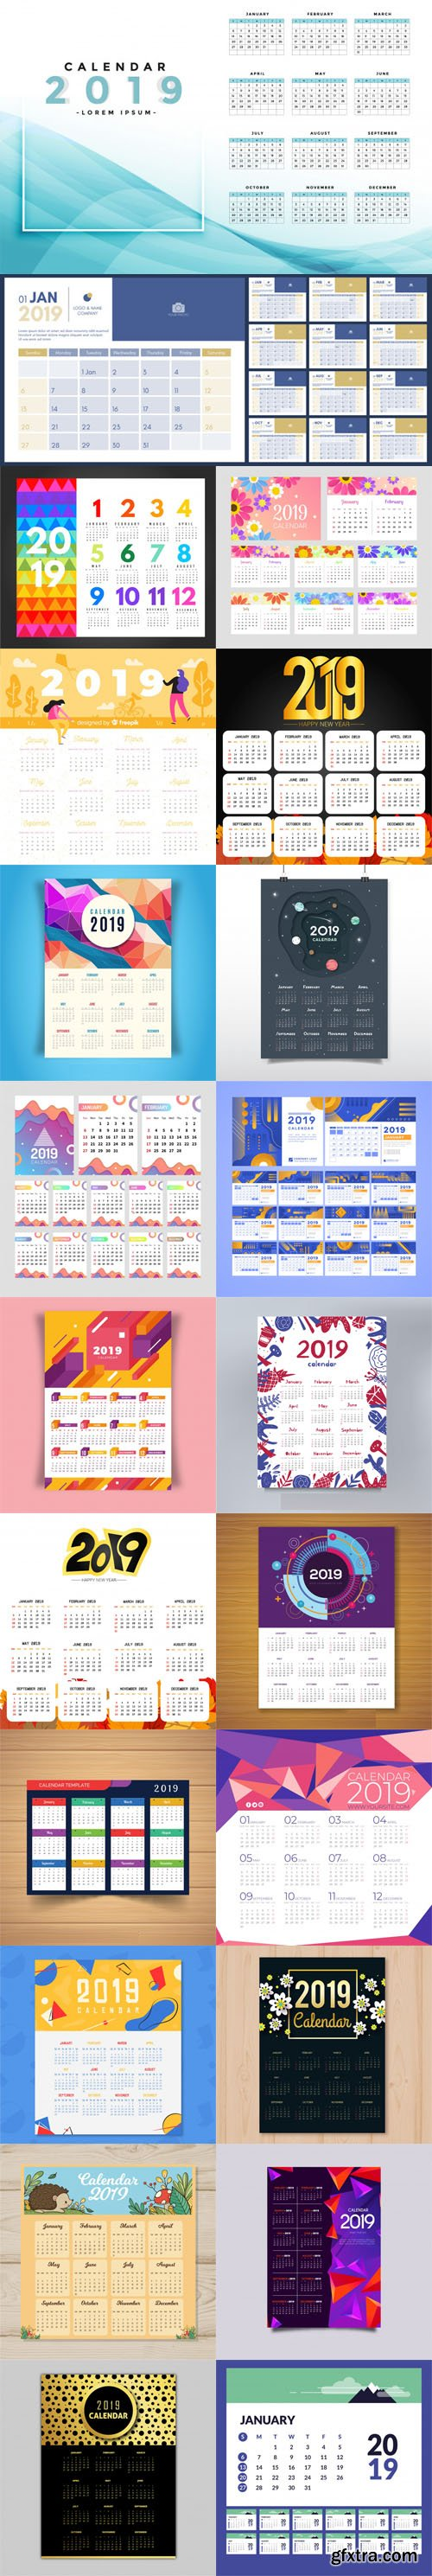 2019 Calendar Vector Templates Collection 4 [22 Calendars]